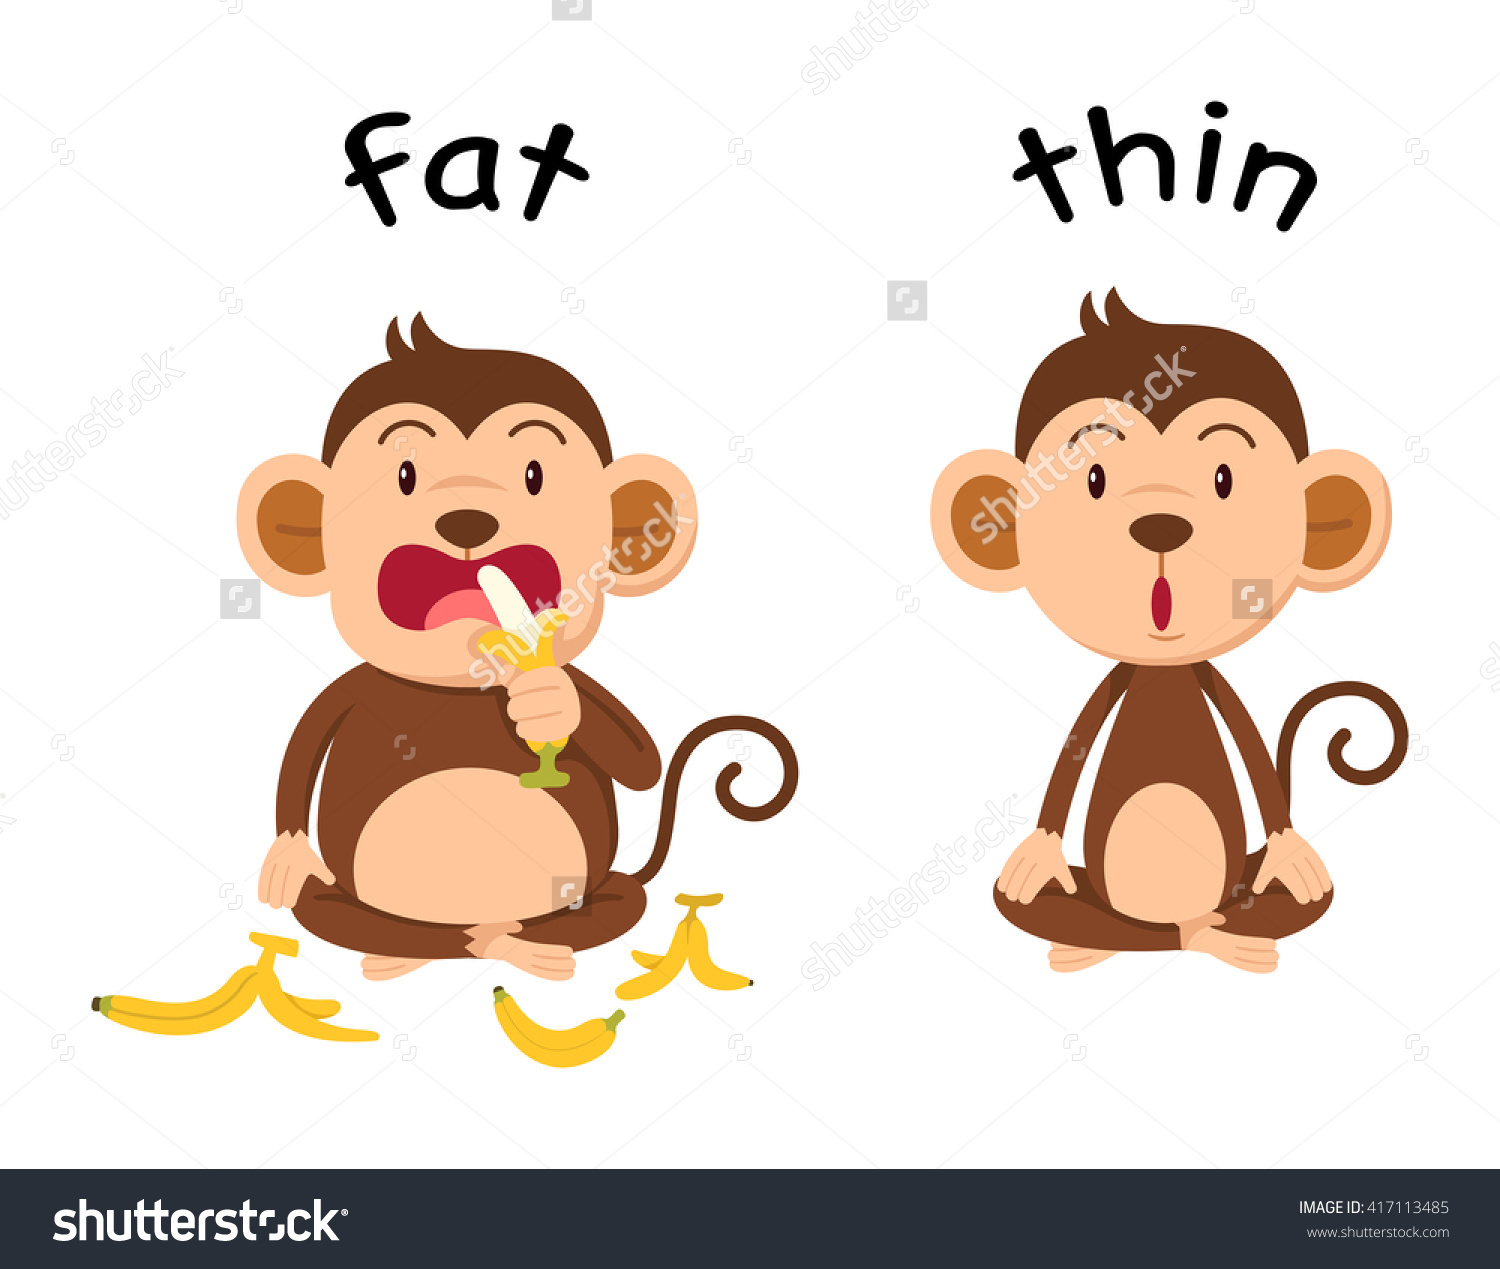 Fat vs thin clipart jpg stock Opposite Words Fat Thin Vector Illustration Stock Vector 417113485 ... jpg stock